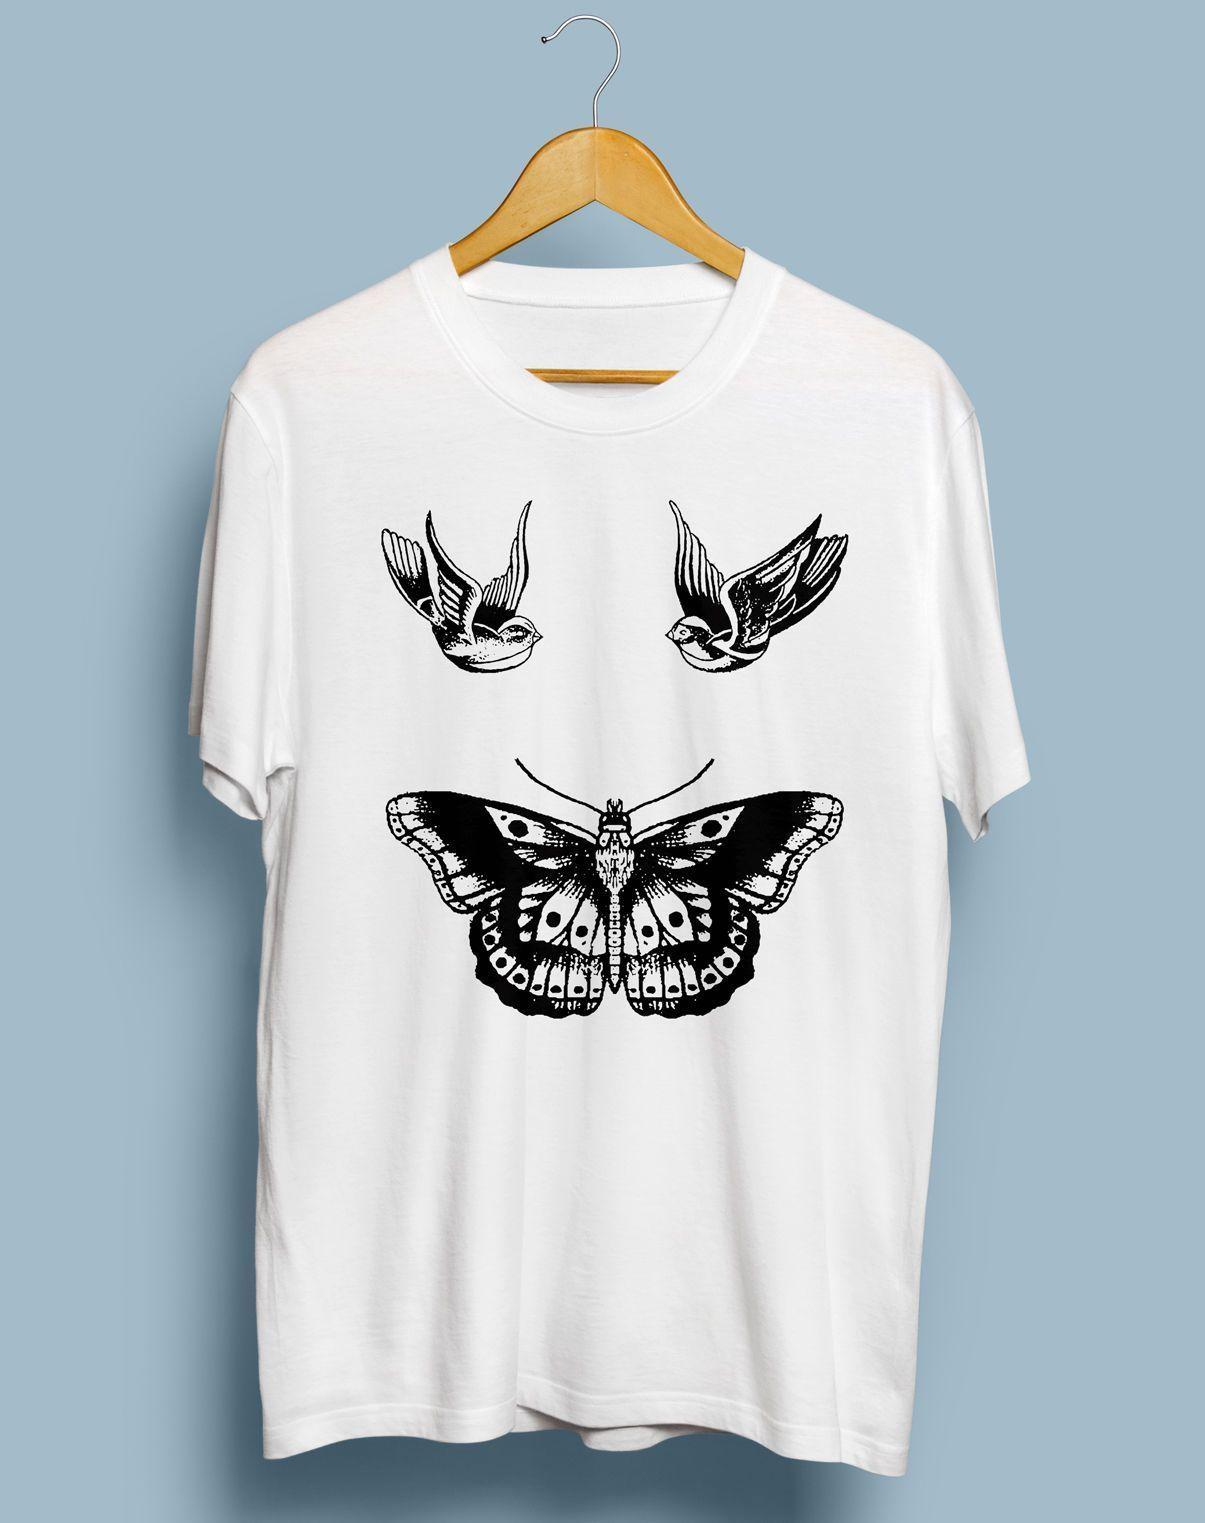 49e458a22b13 Harry Styles Tattoo T ShirtFunny Unisex Casual Tshirt Top Printing On T  Shirts Crazy T Shirts From Pepitaprint